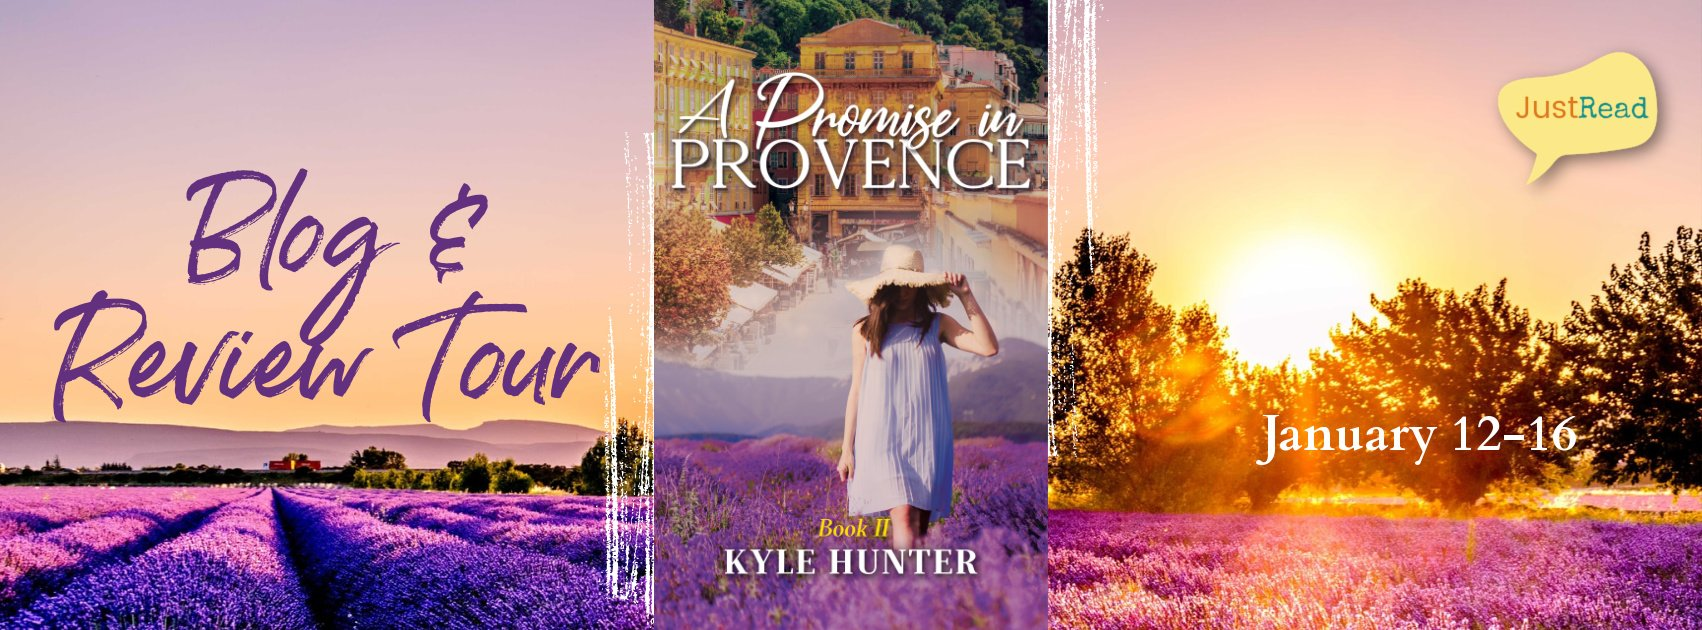 A Promise in Provence JustRead Blog + Review Tour